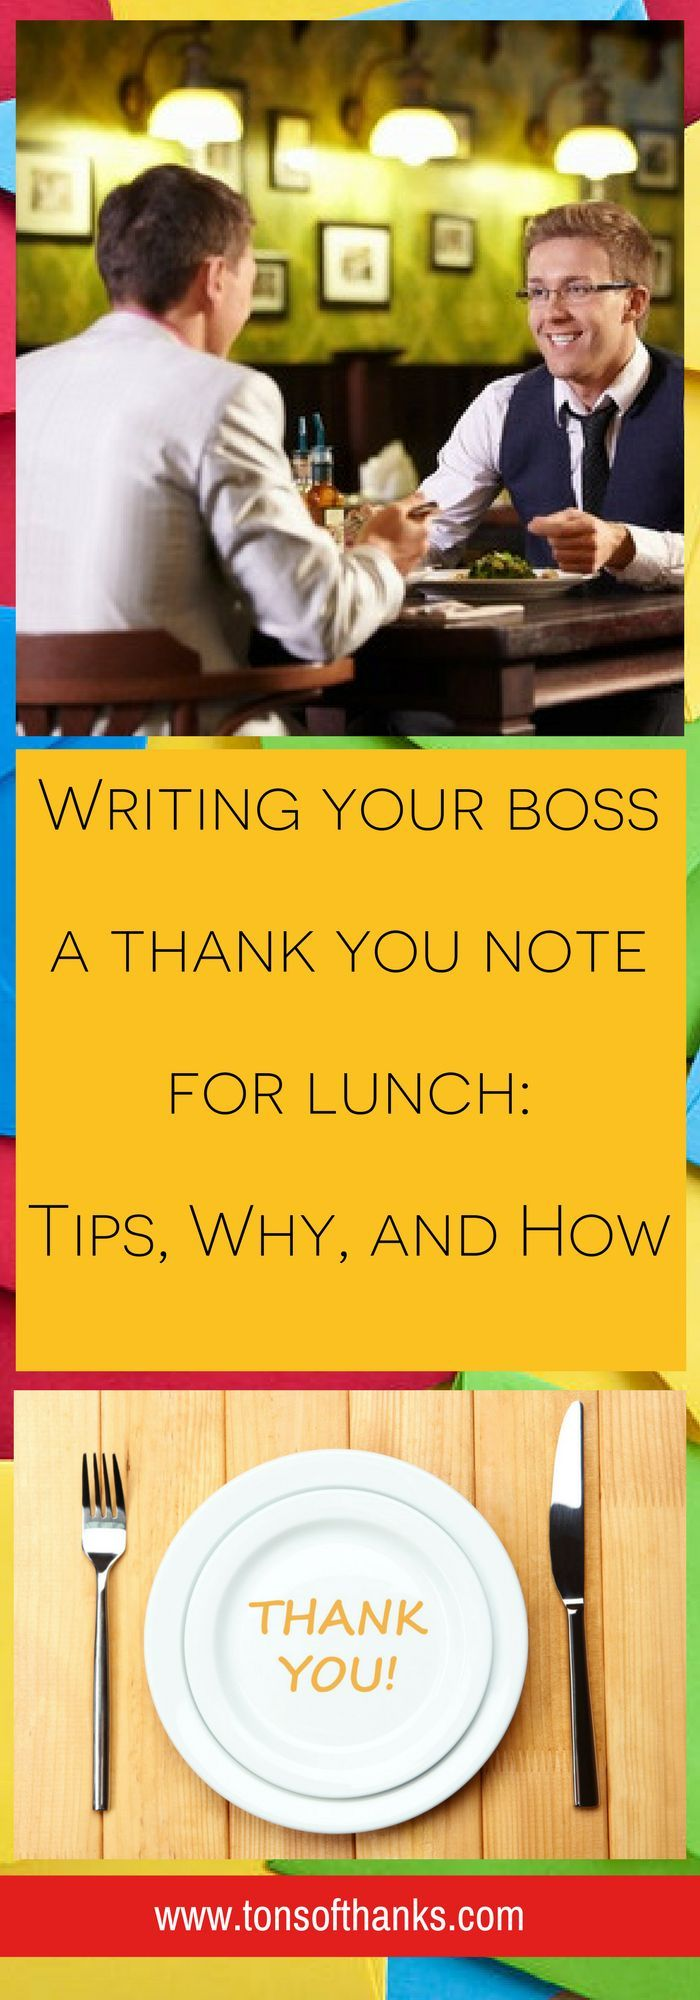 Writing your boss a thank you note